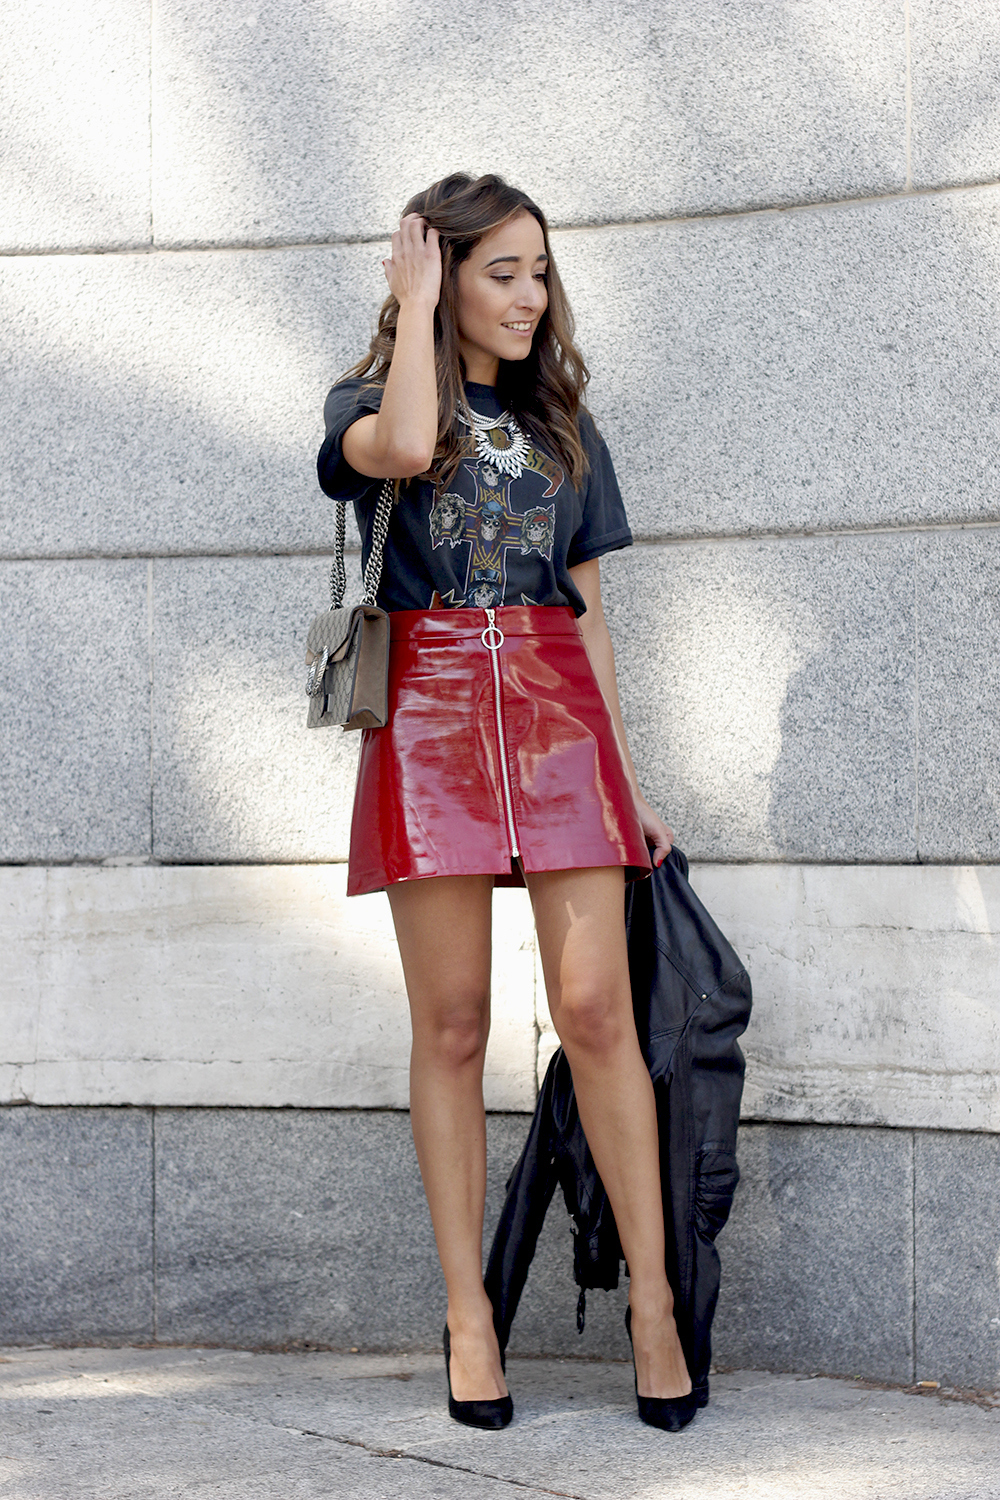 patent leather skirt guns and roses shirt leather jacket heels fashion outfit style09